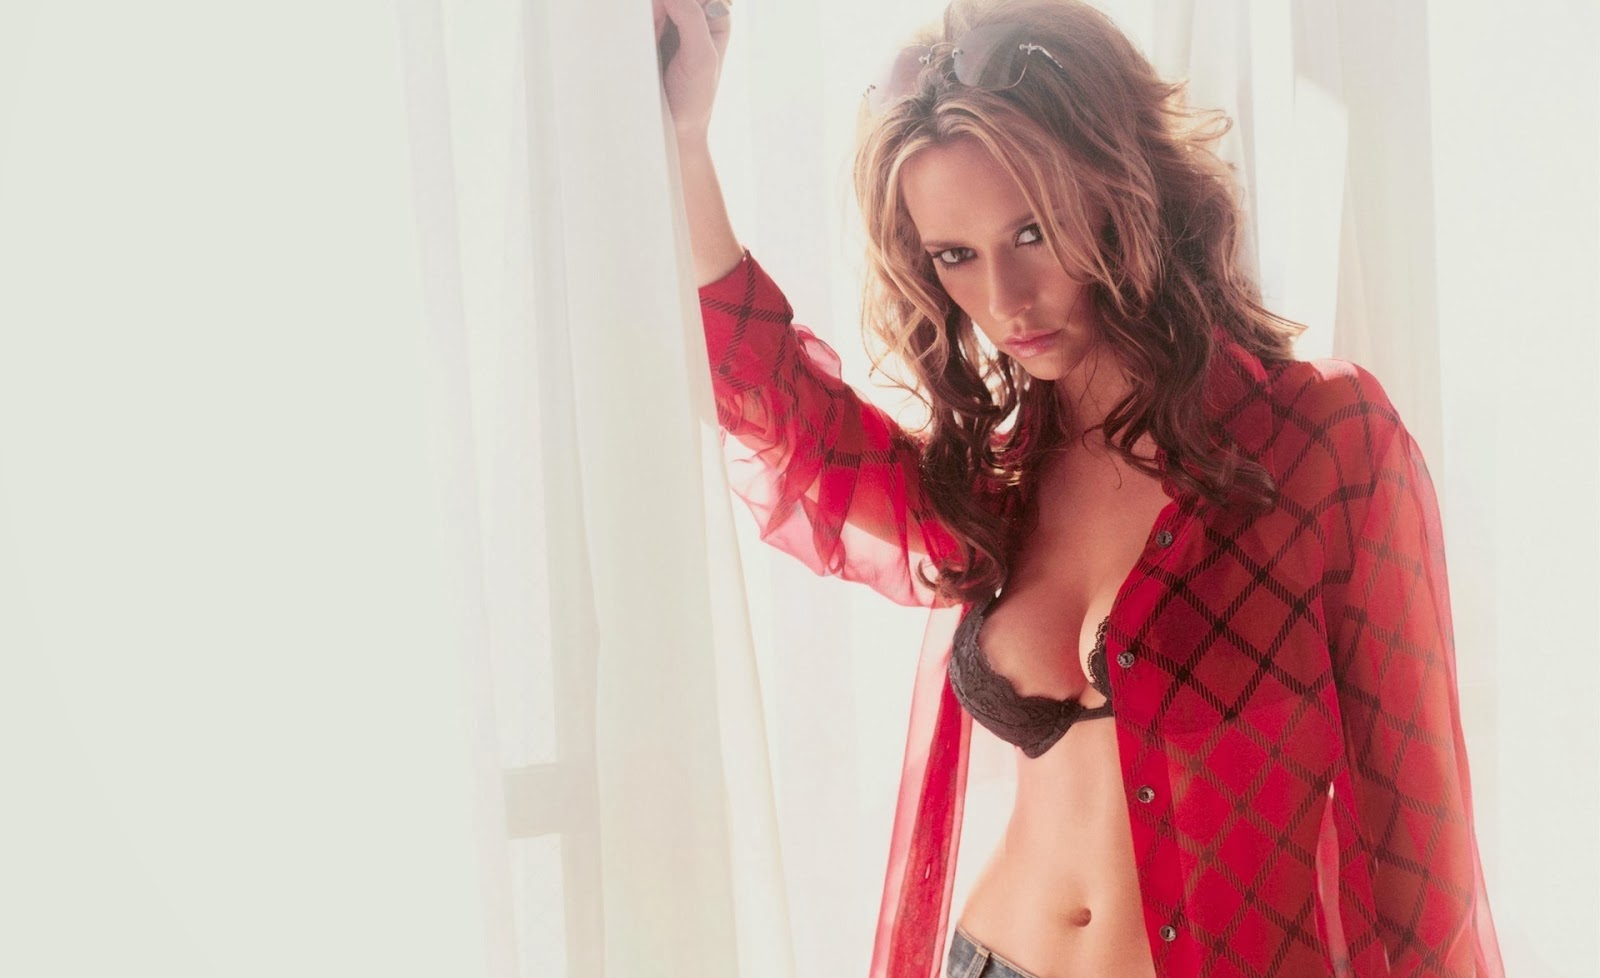 Jennifer love hewitt hot hd wallpapers hd wallpapers blog for Hot images blog